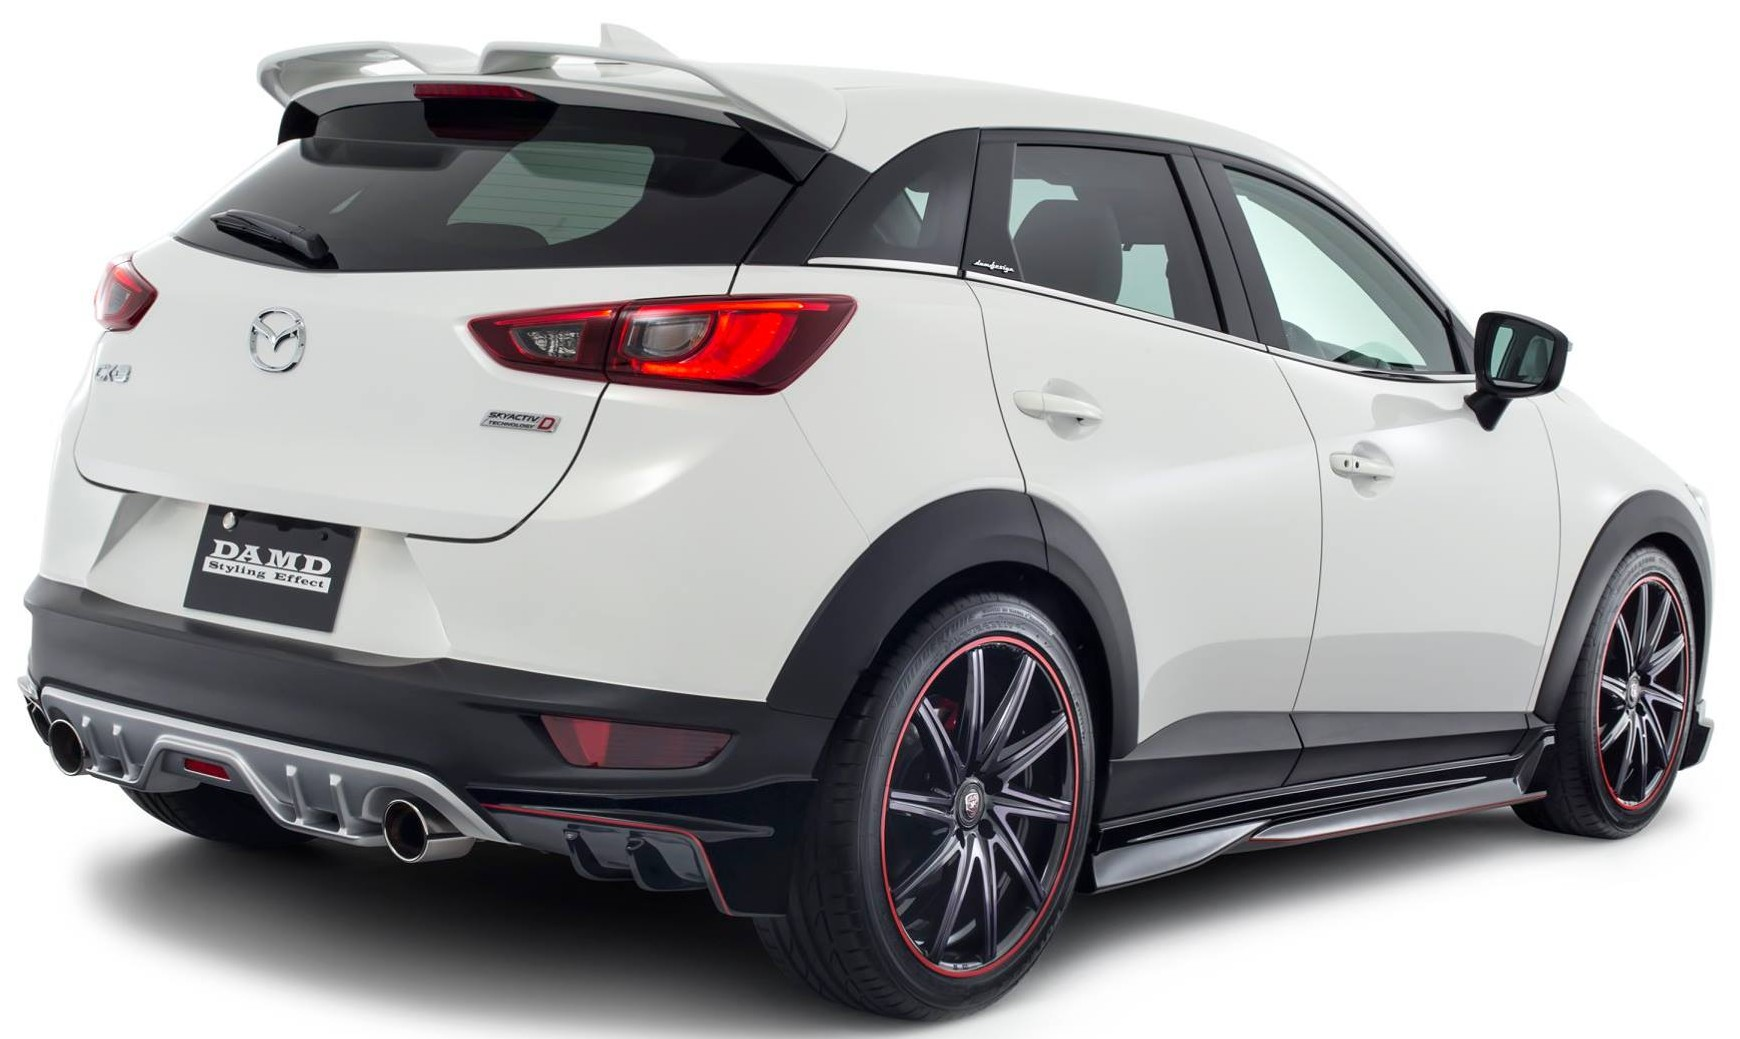 mazda 2 and cx 3 fitted with damd body kits in japan image. Black Bedroom Furniture Sets. Home Design Ideas